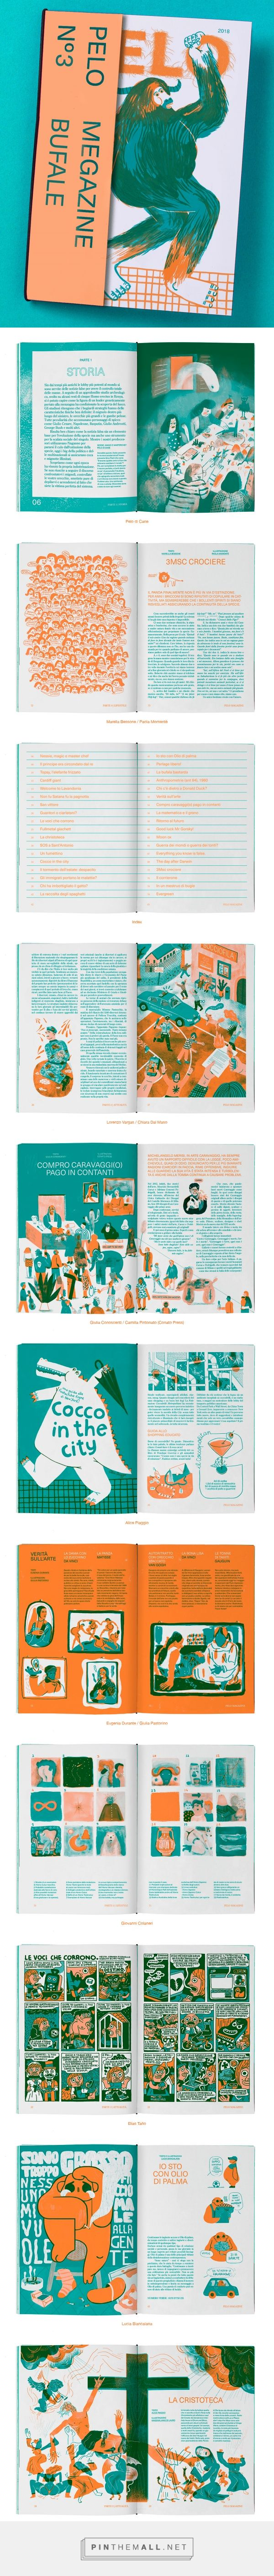 PELO megazine issue n°3 on Behance - created via https://pinthemall.net